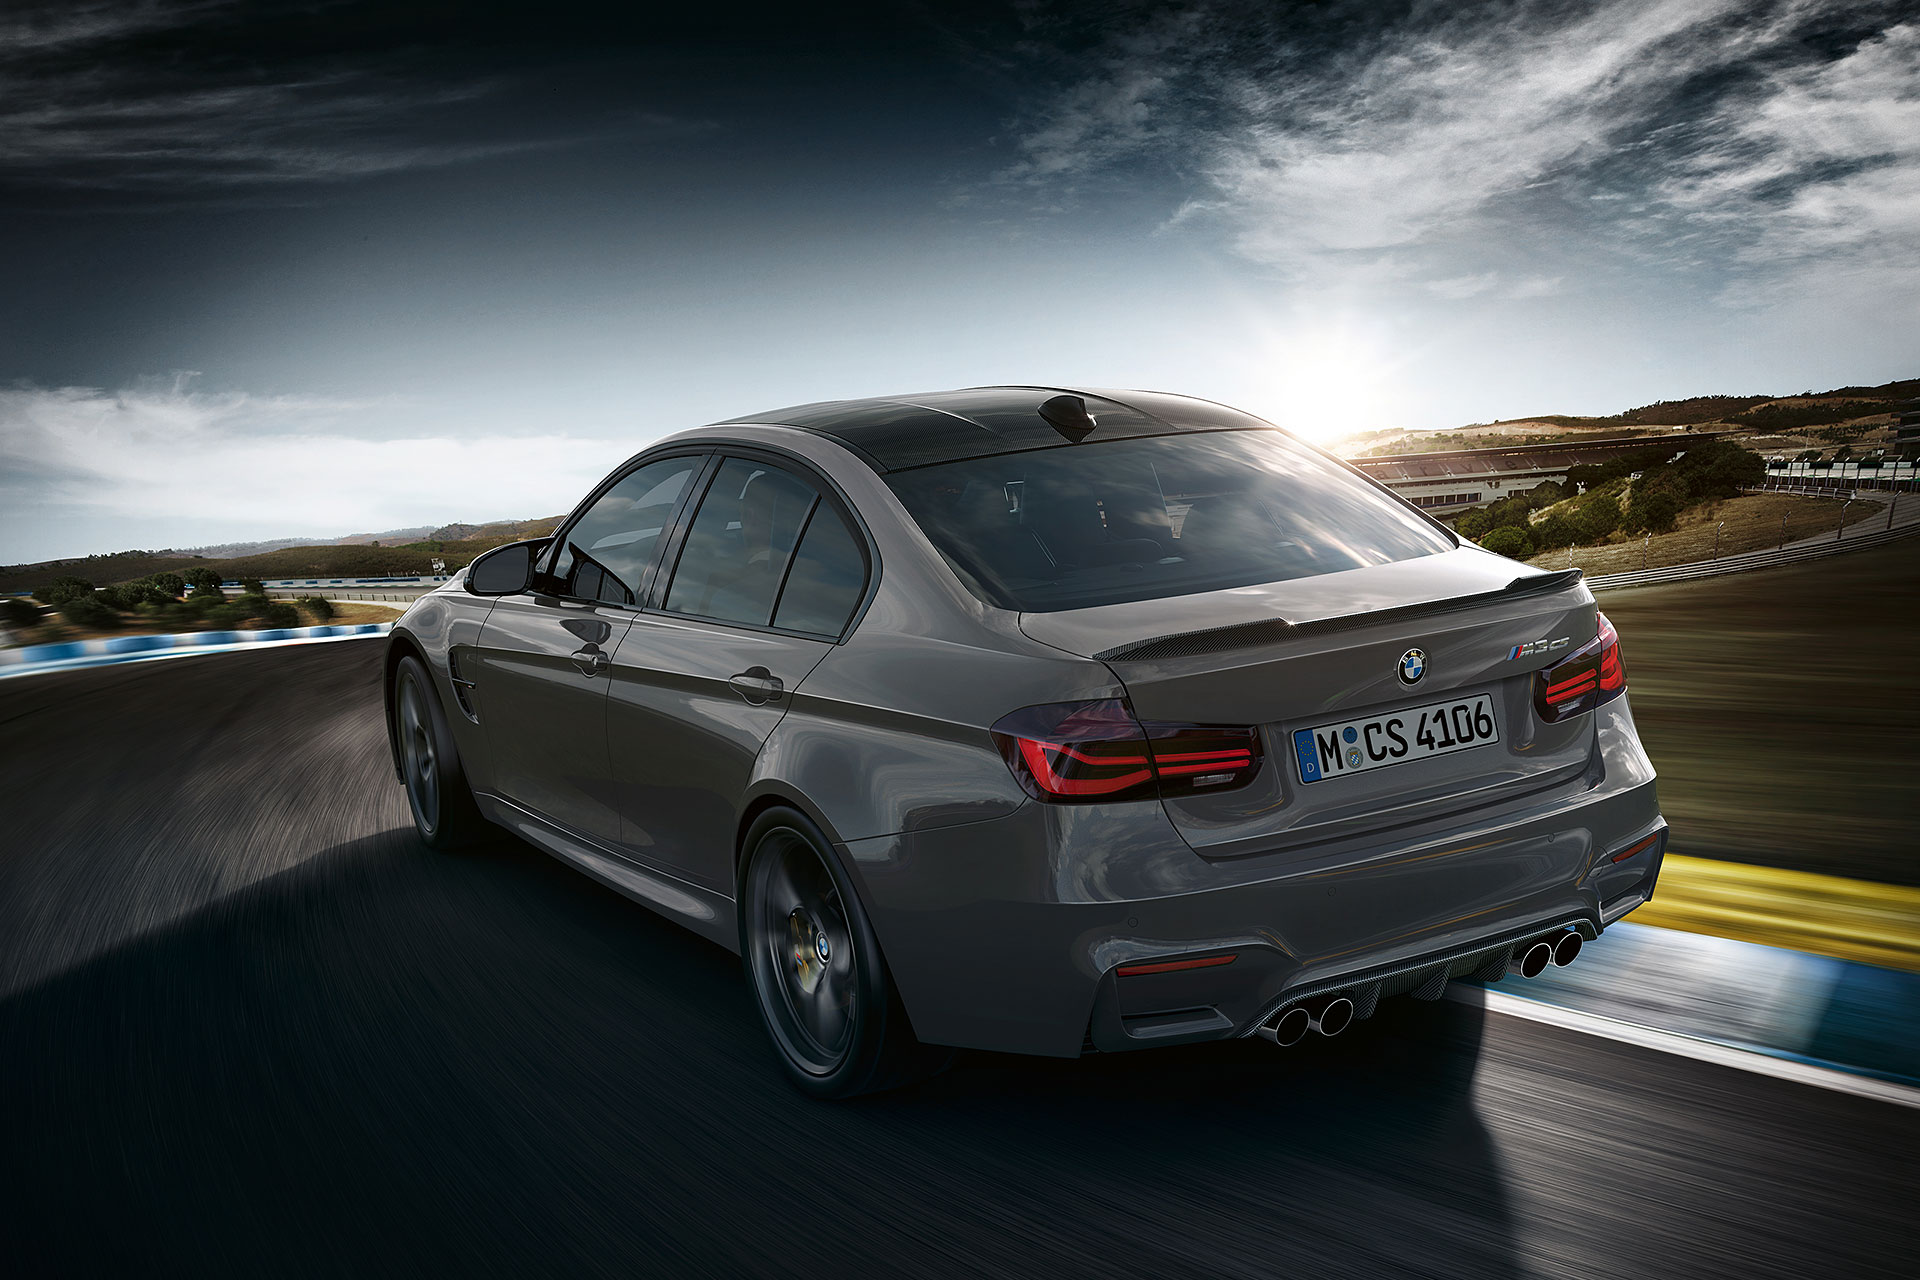 BMW-m3-cs-DTKMEN-3.jpg